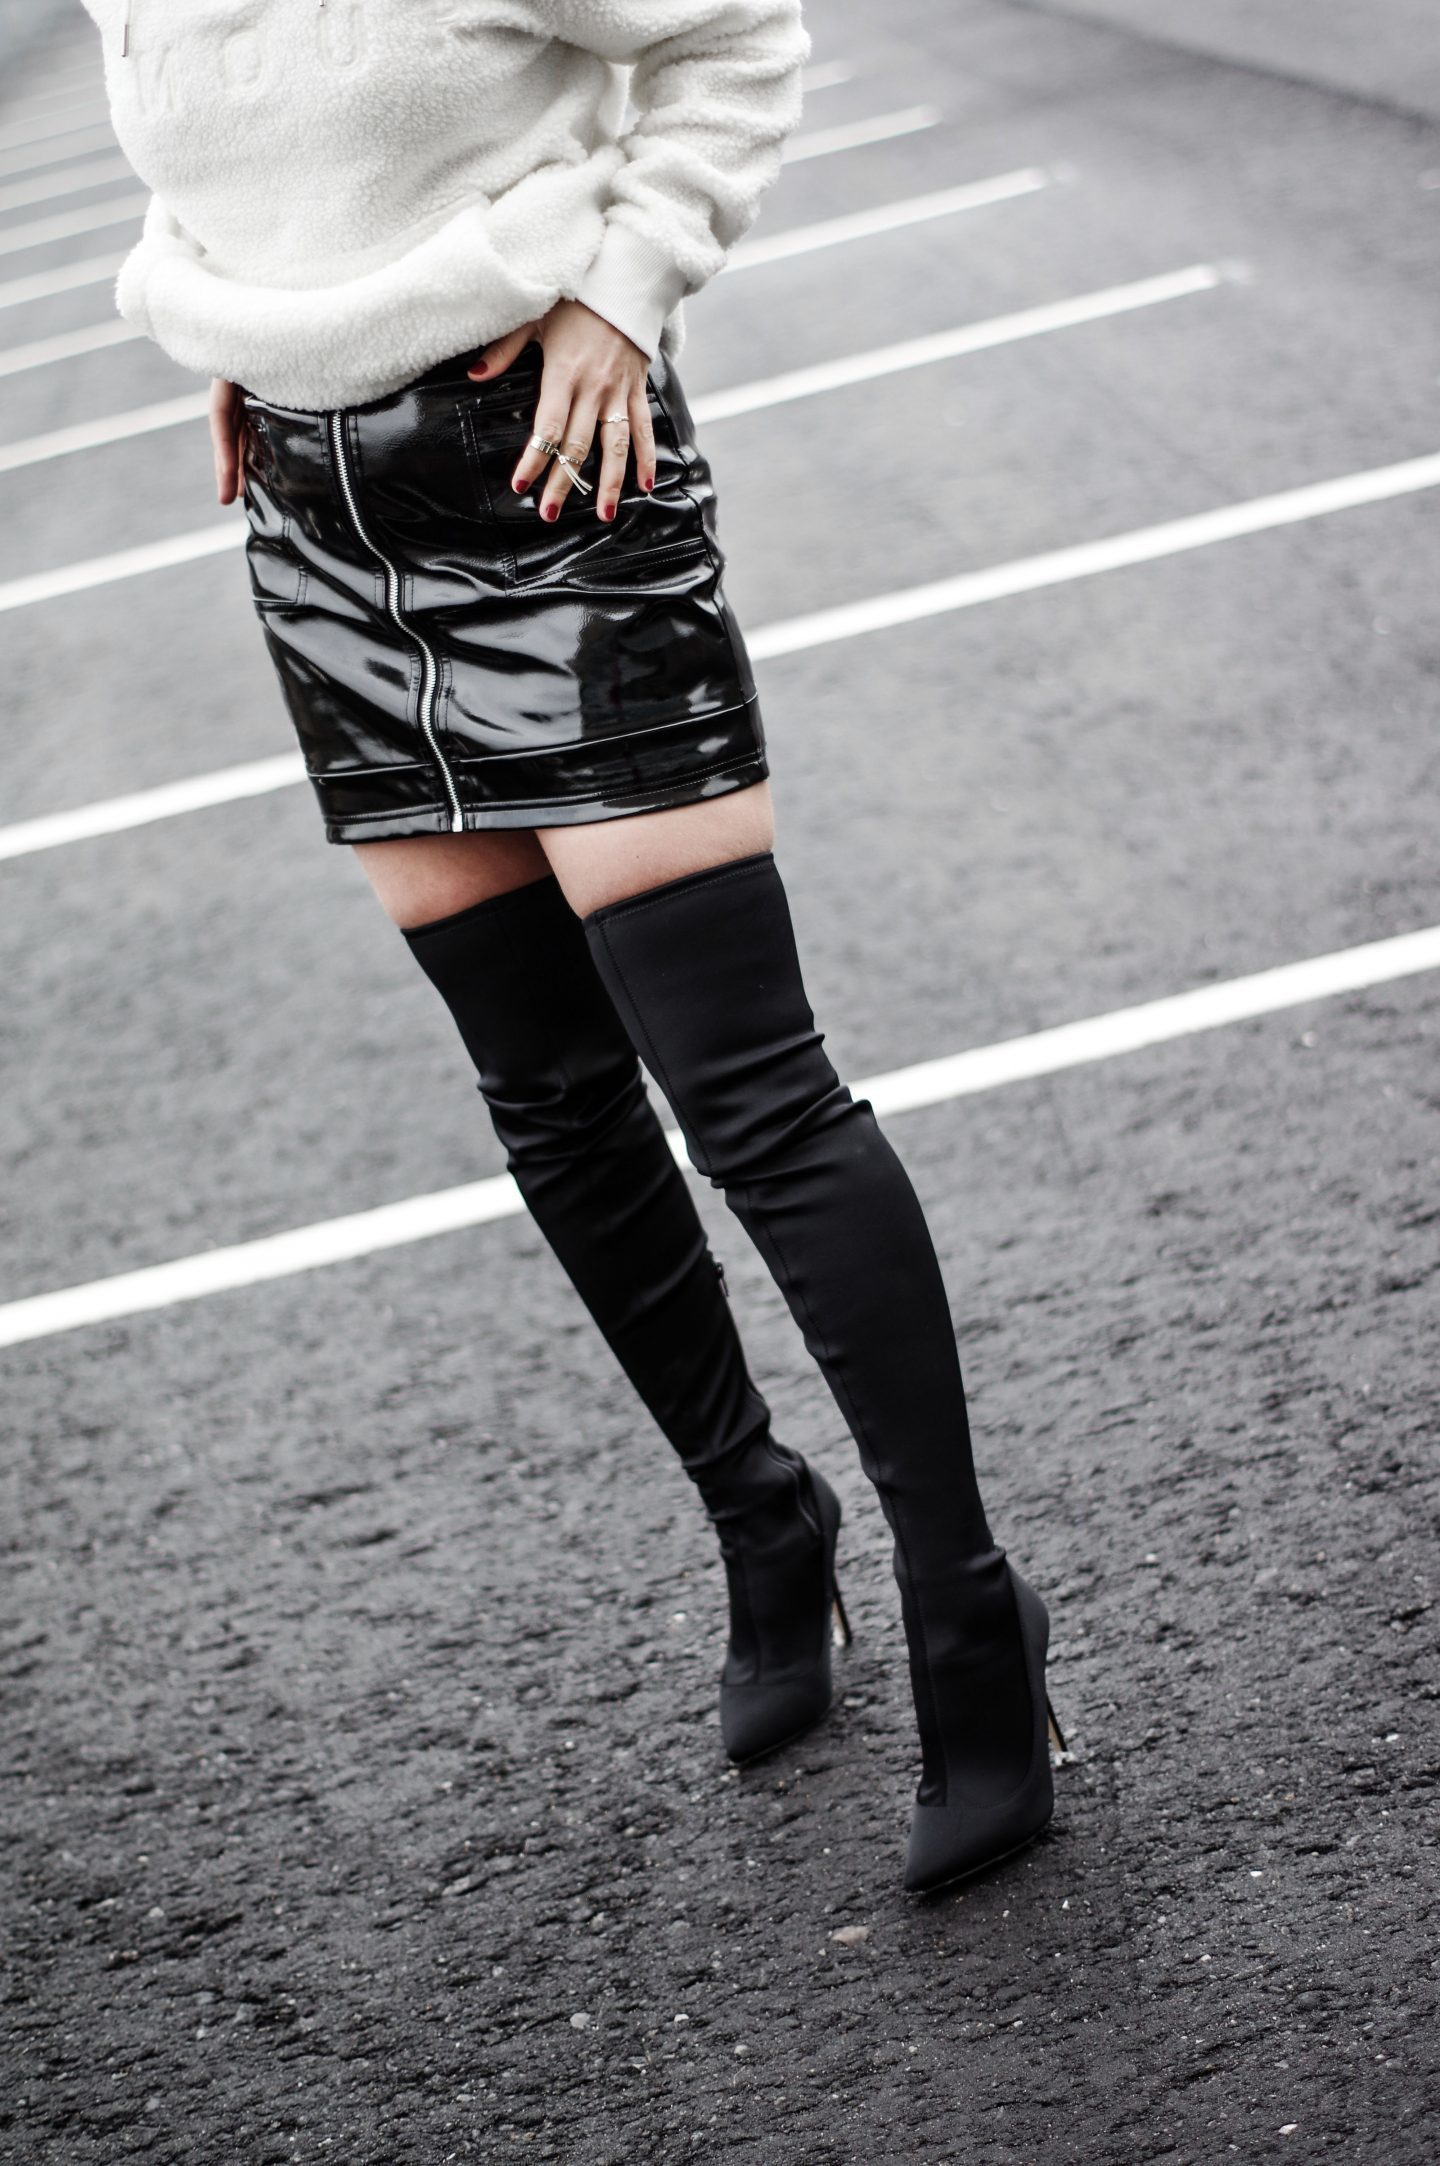 Hoodie sweatshirt fall outfit fall fashion over the knee boots shiny skirt